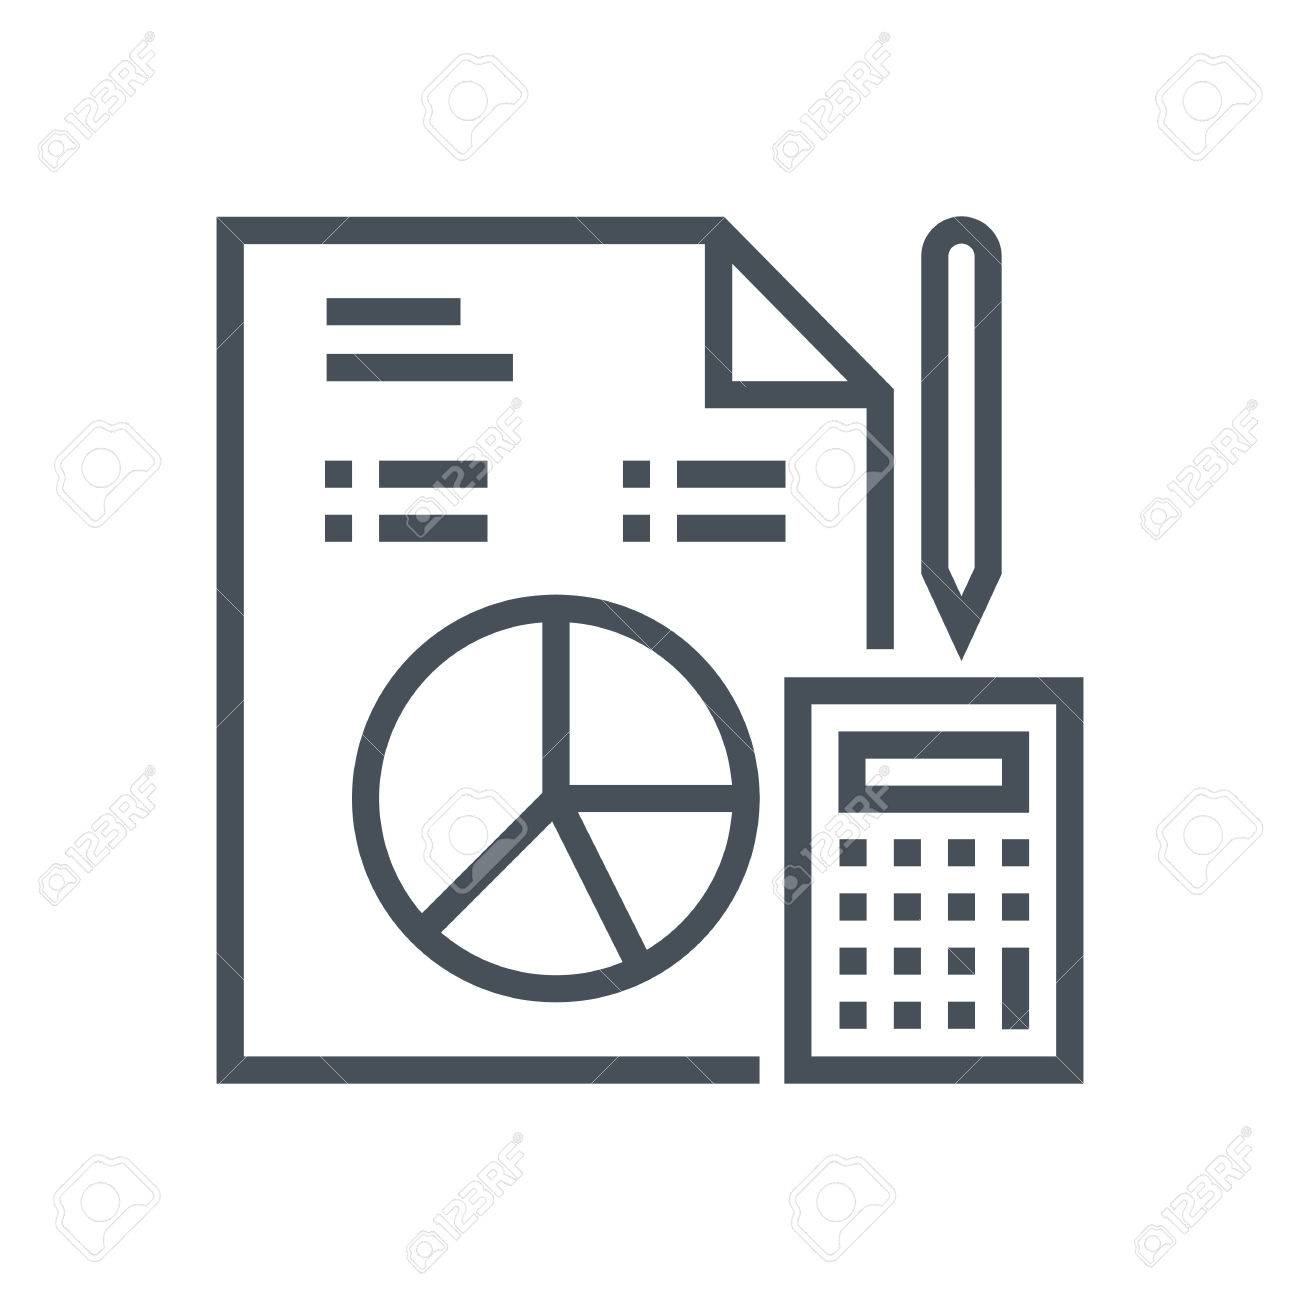 budget statistics icon suitable for info graphics websites and